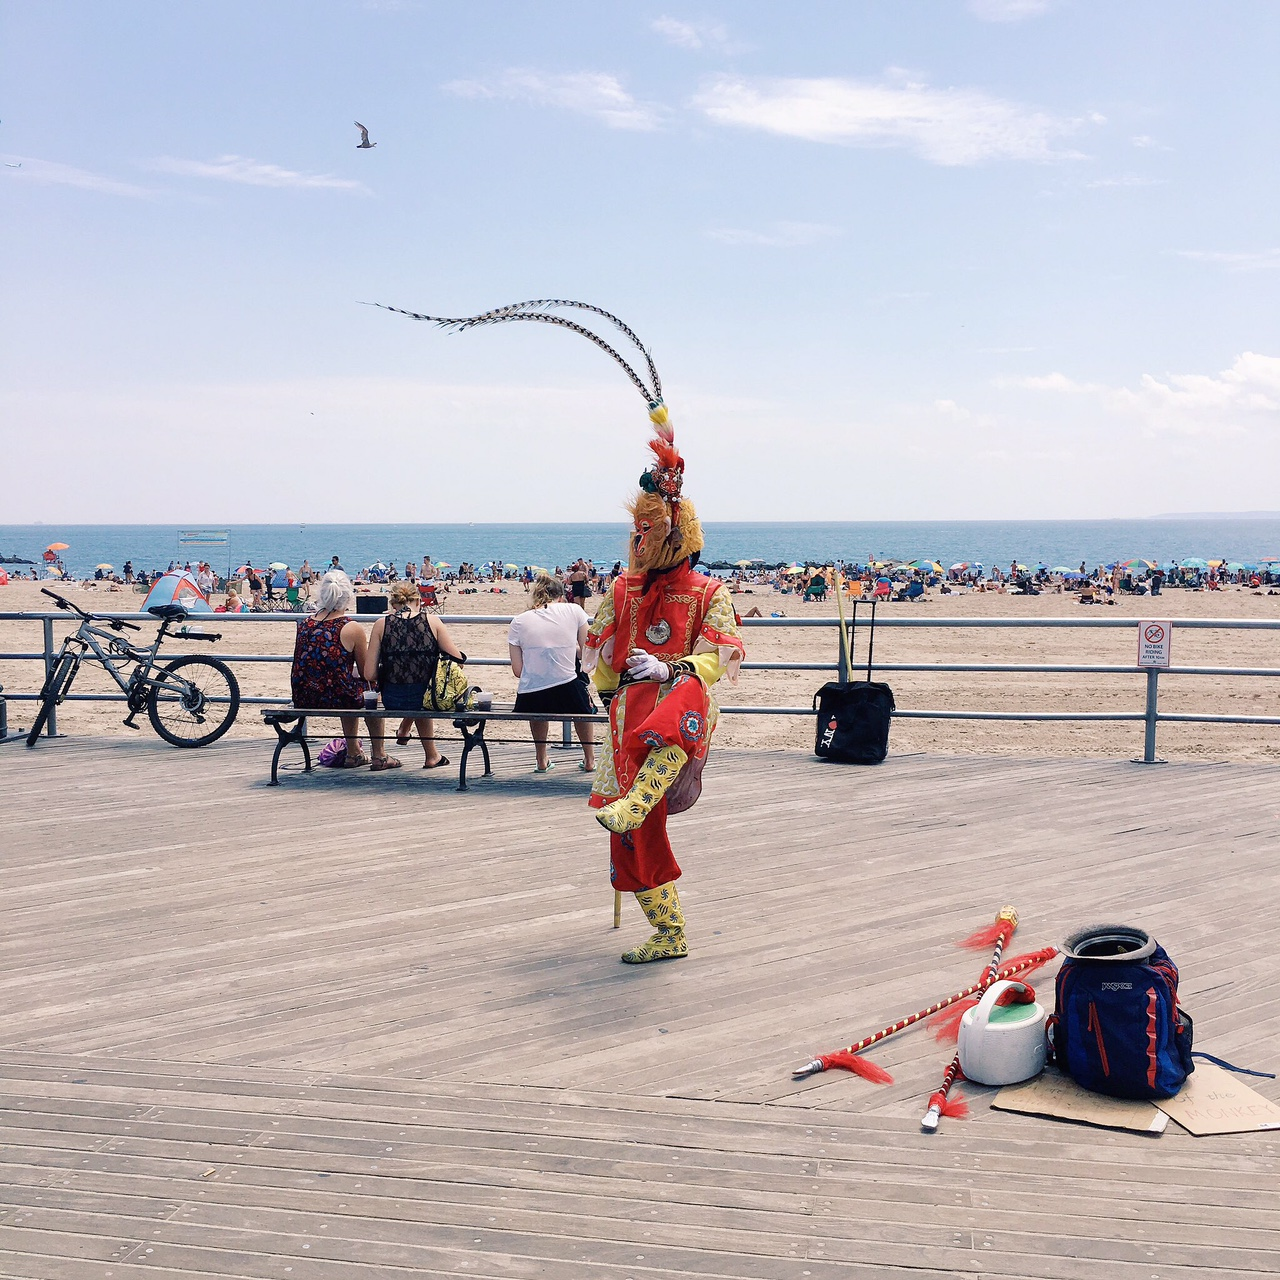 I love Coney Island. Trust me, it's worth it. I've been two (maybe three) times this summer.